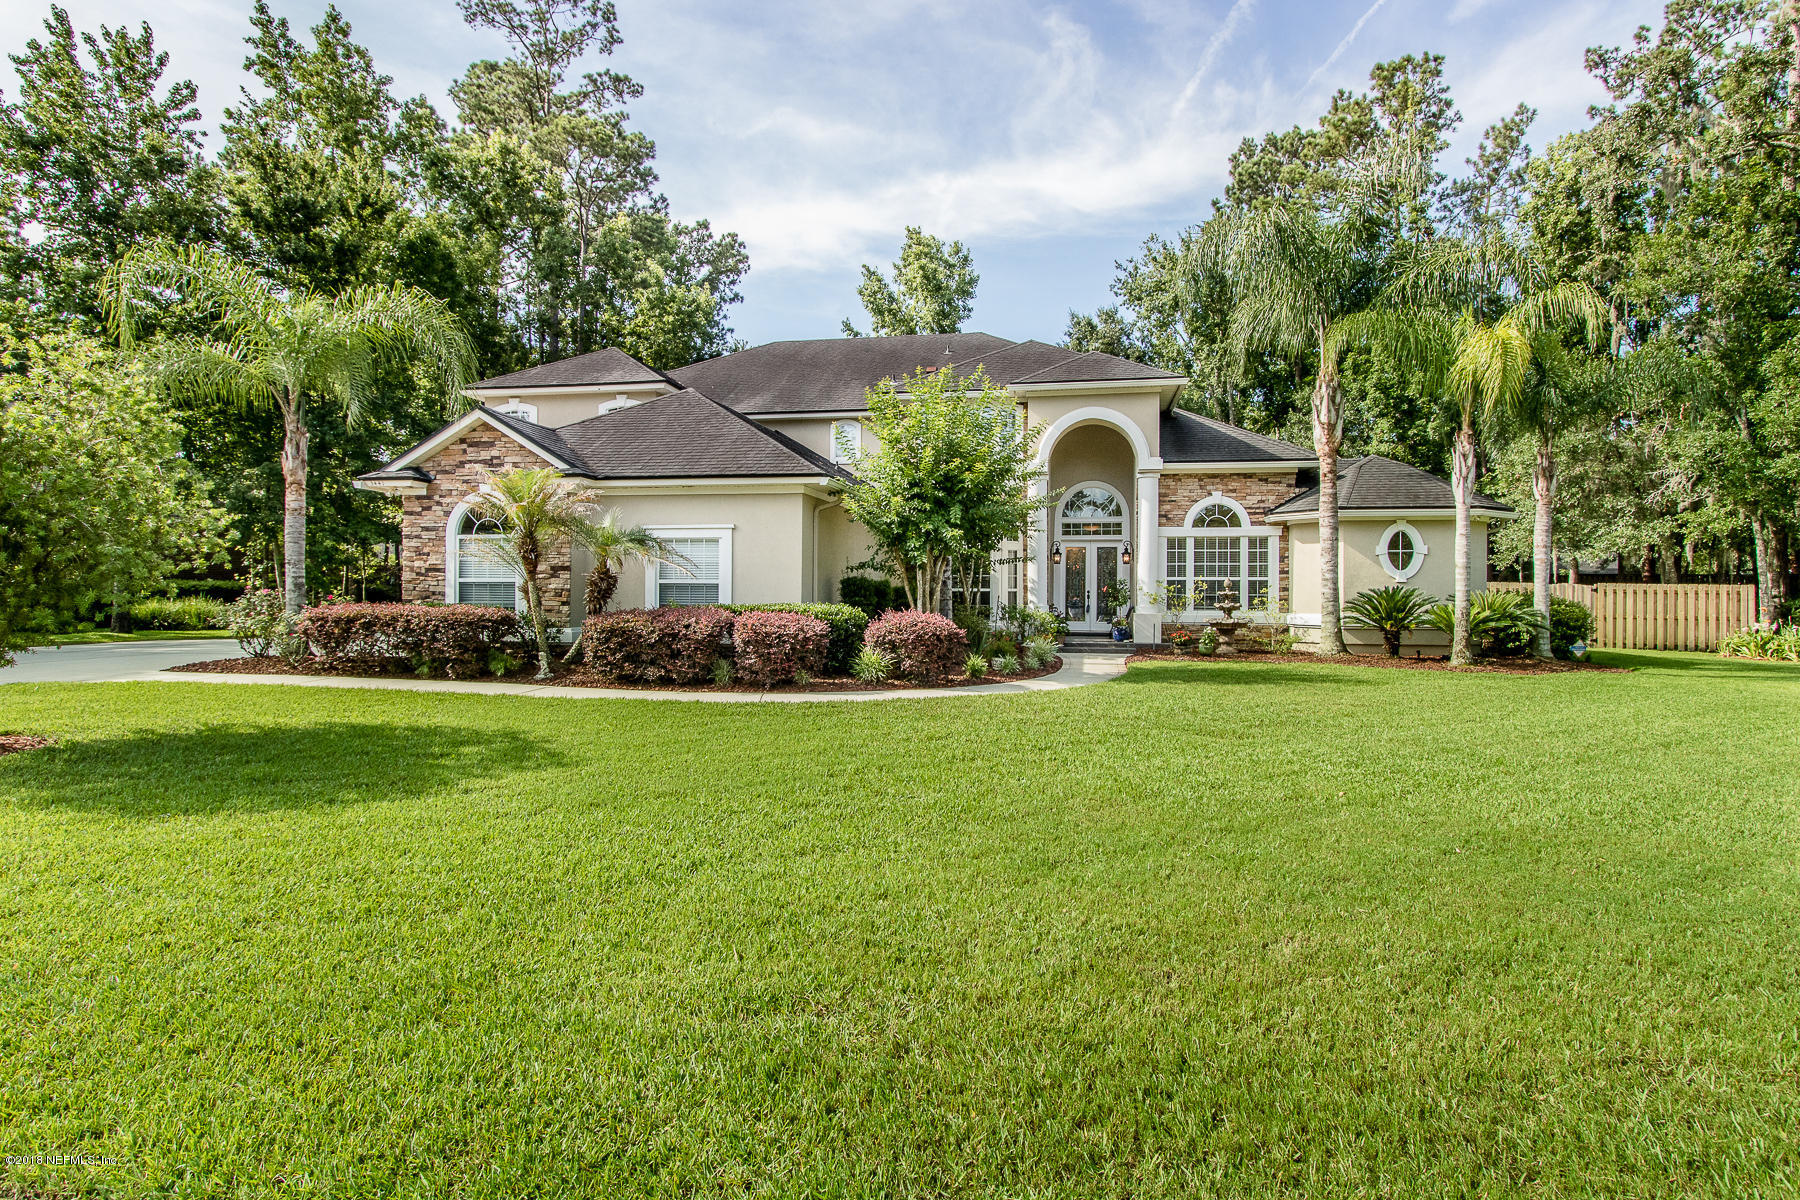 3441 MAINARD BRANCH, FLEMING ISLAND, FLORIDA 32003, 5 Bedrooms Bedrooms, ,4 BathroomsBathrooms,Residential - single family,For sale,MAINARD BRANCH,941205